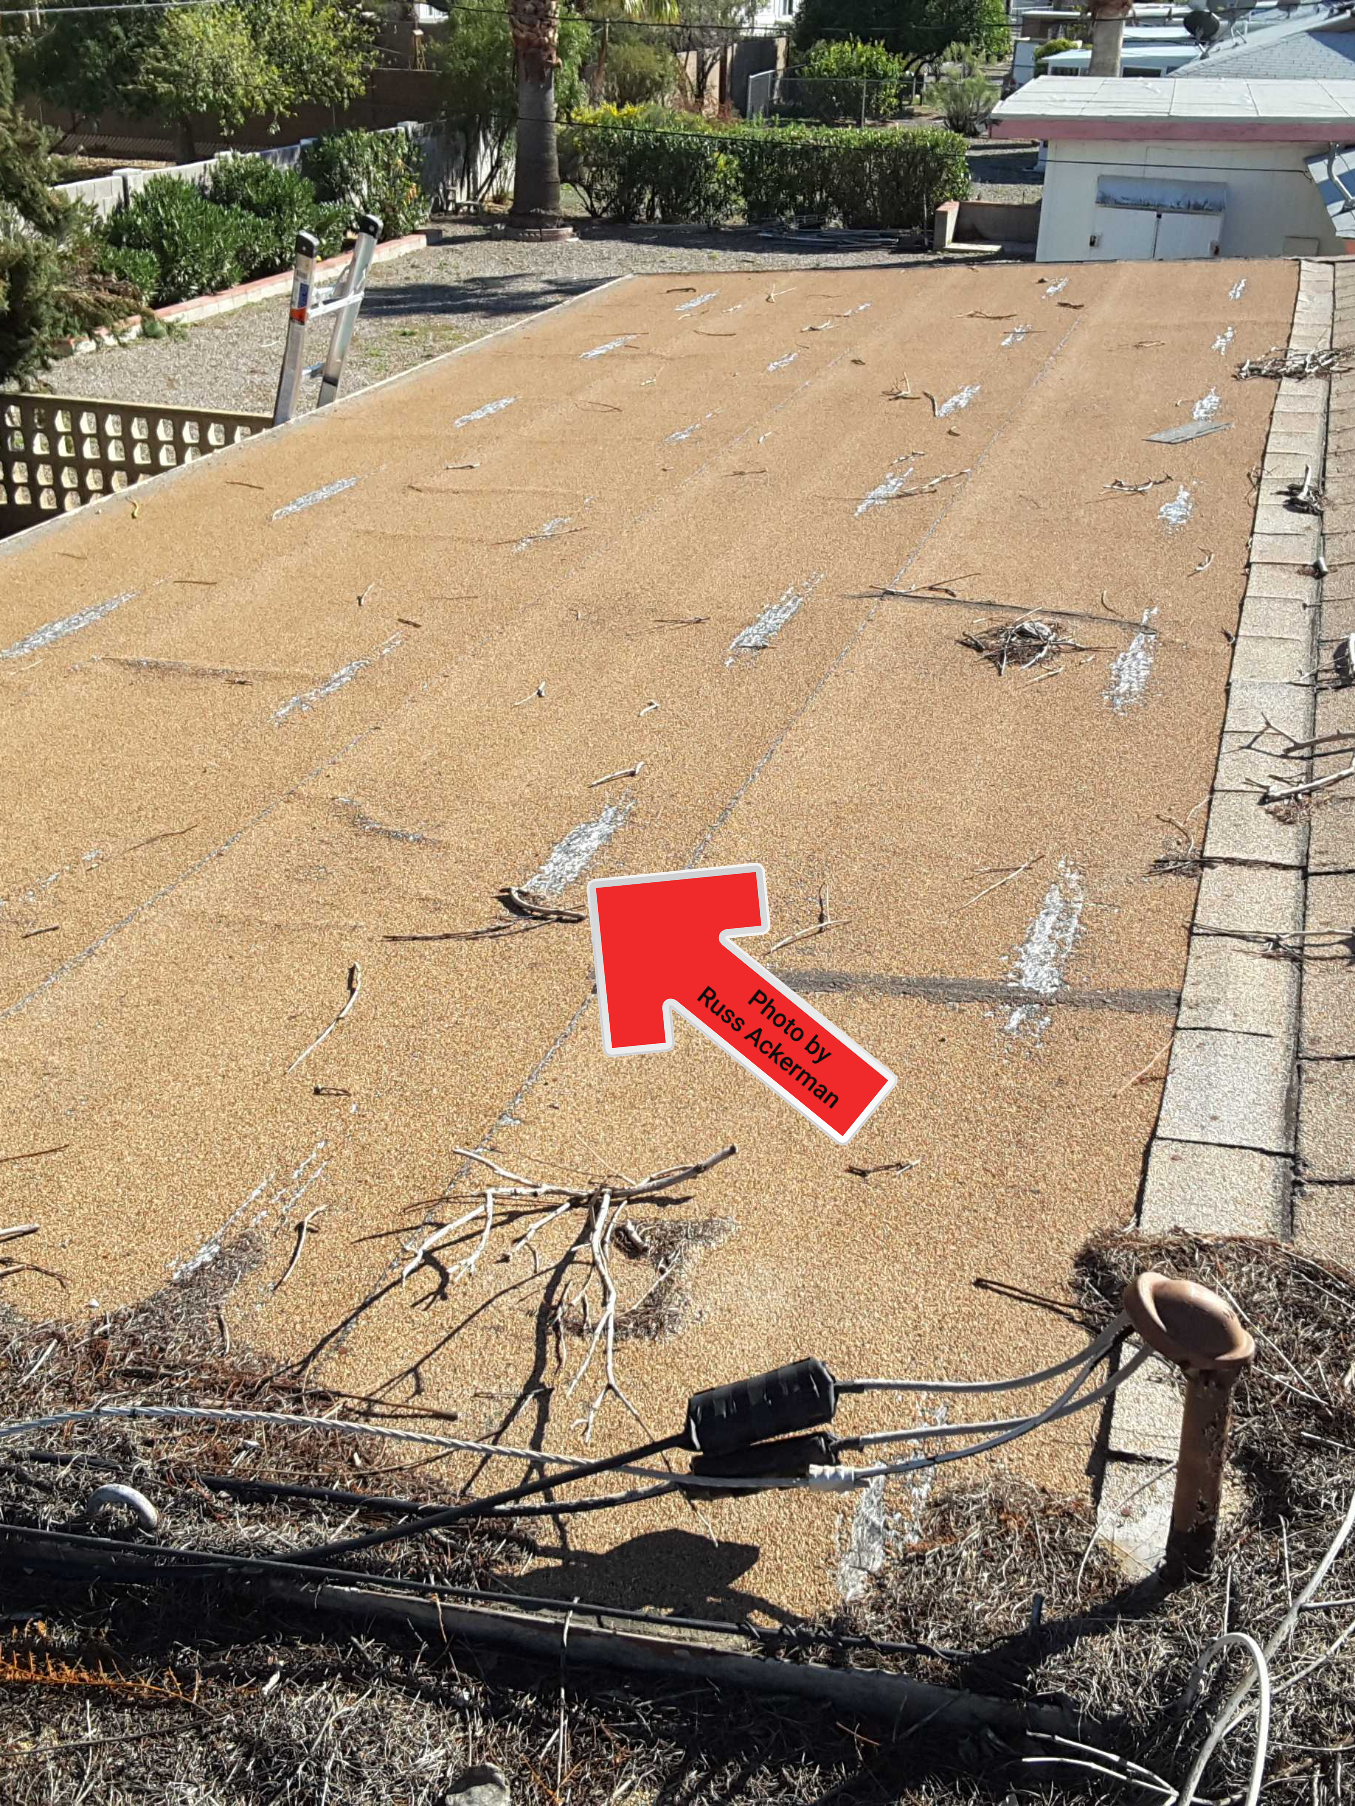 This roof has seen its last days and is in need of replacement before a leak develops.